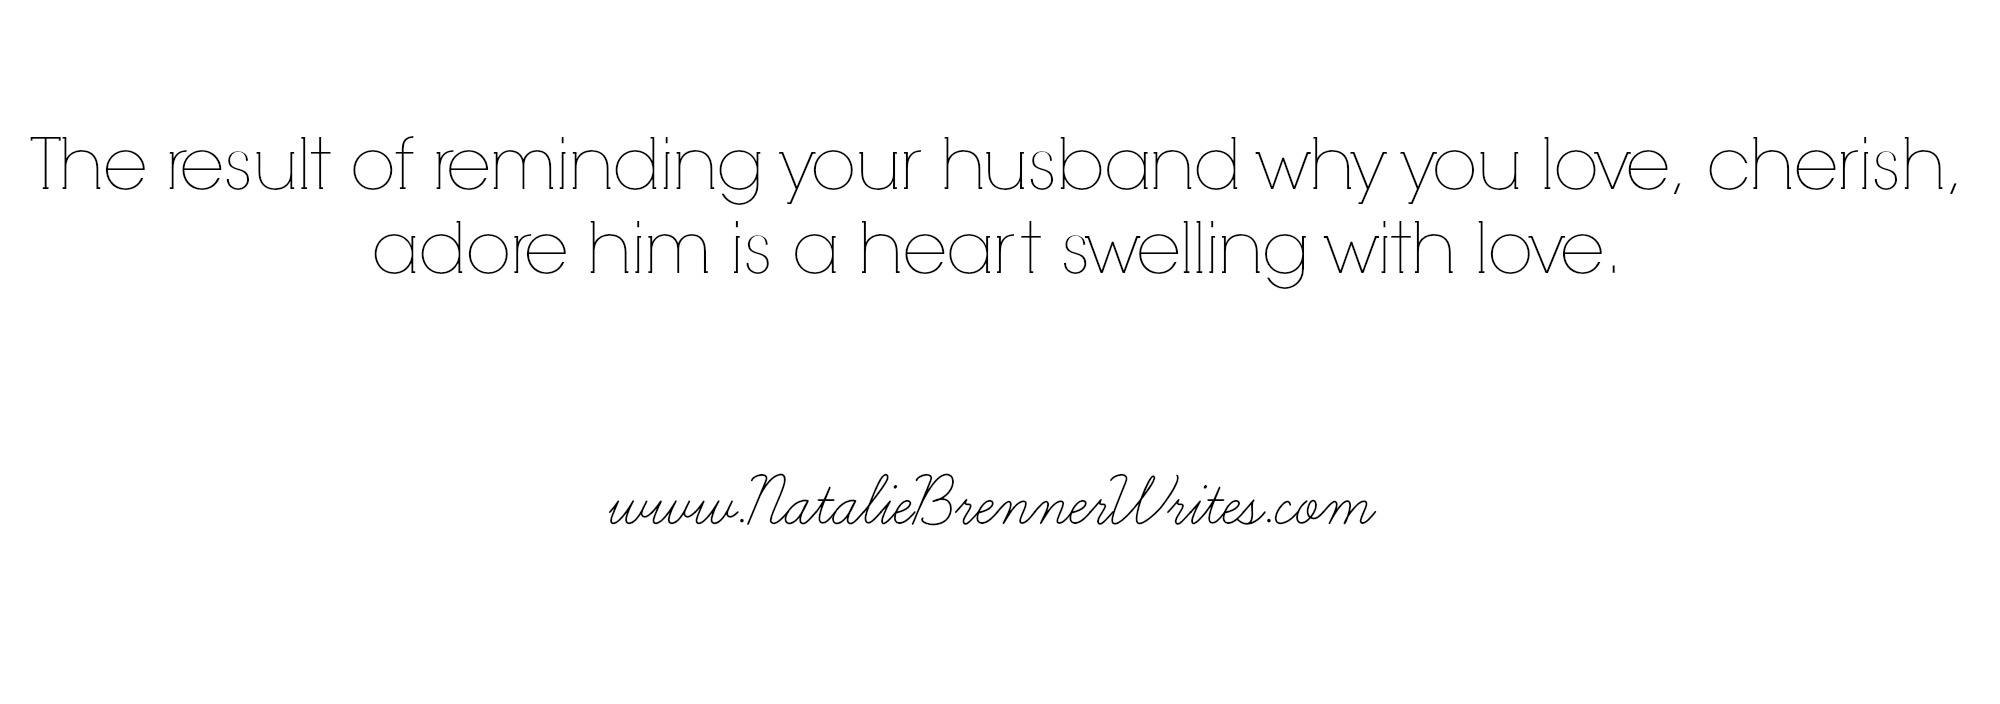 remind your husband why you cherish him